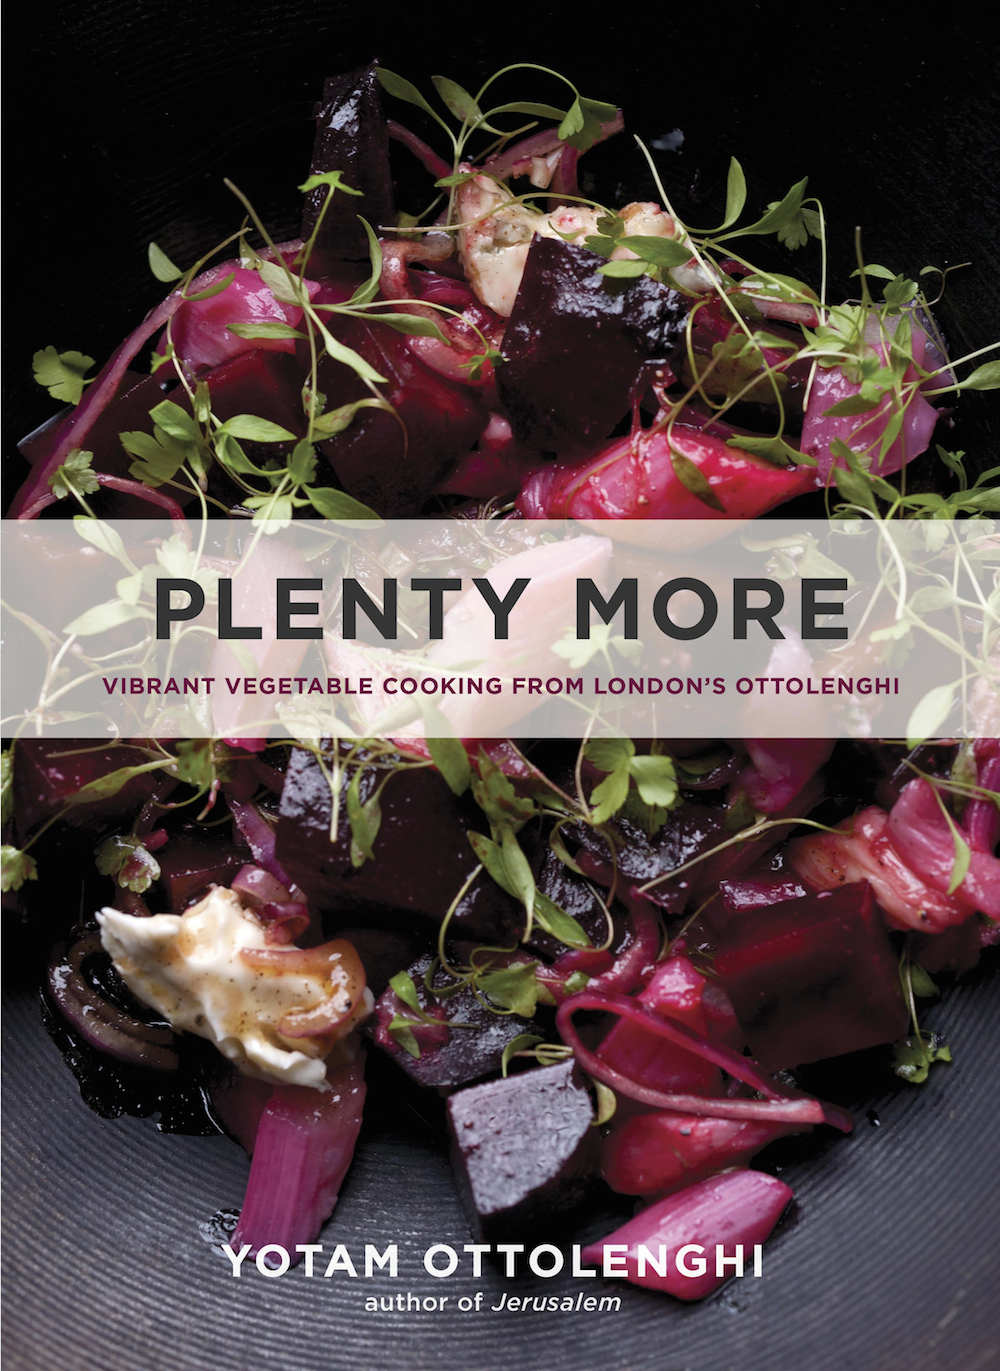 ottolenghi - cookbook -plentymore-04.jpg